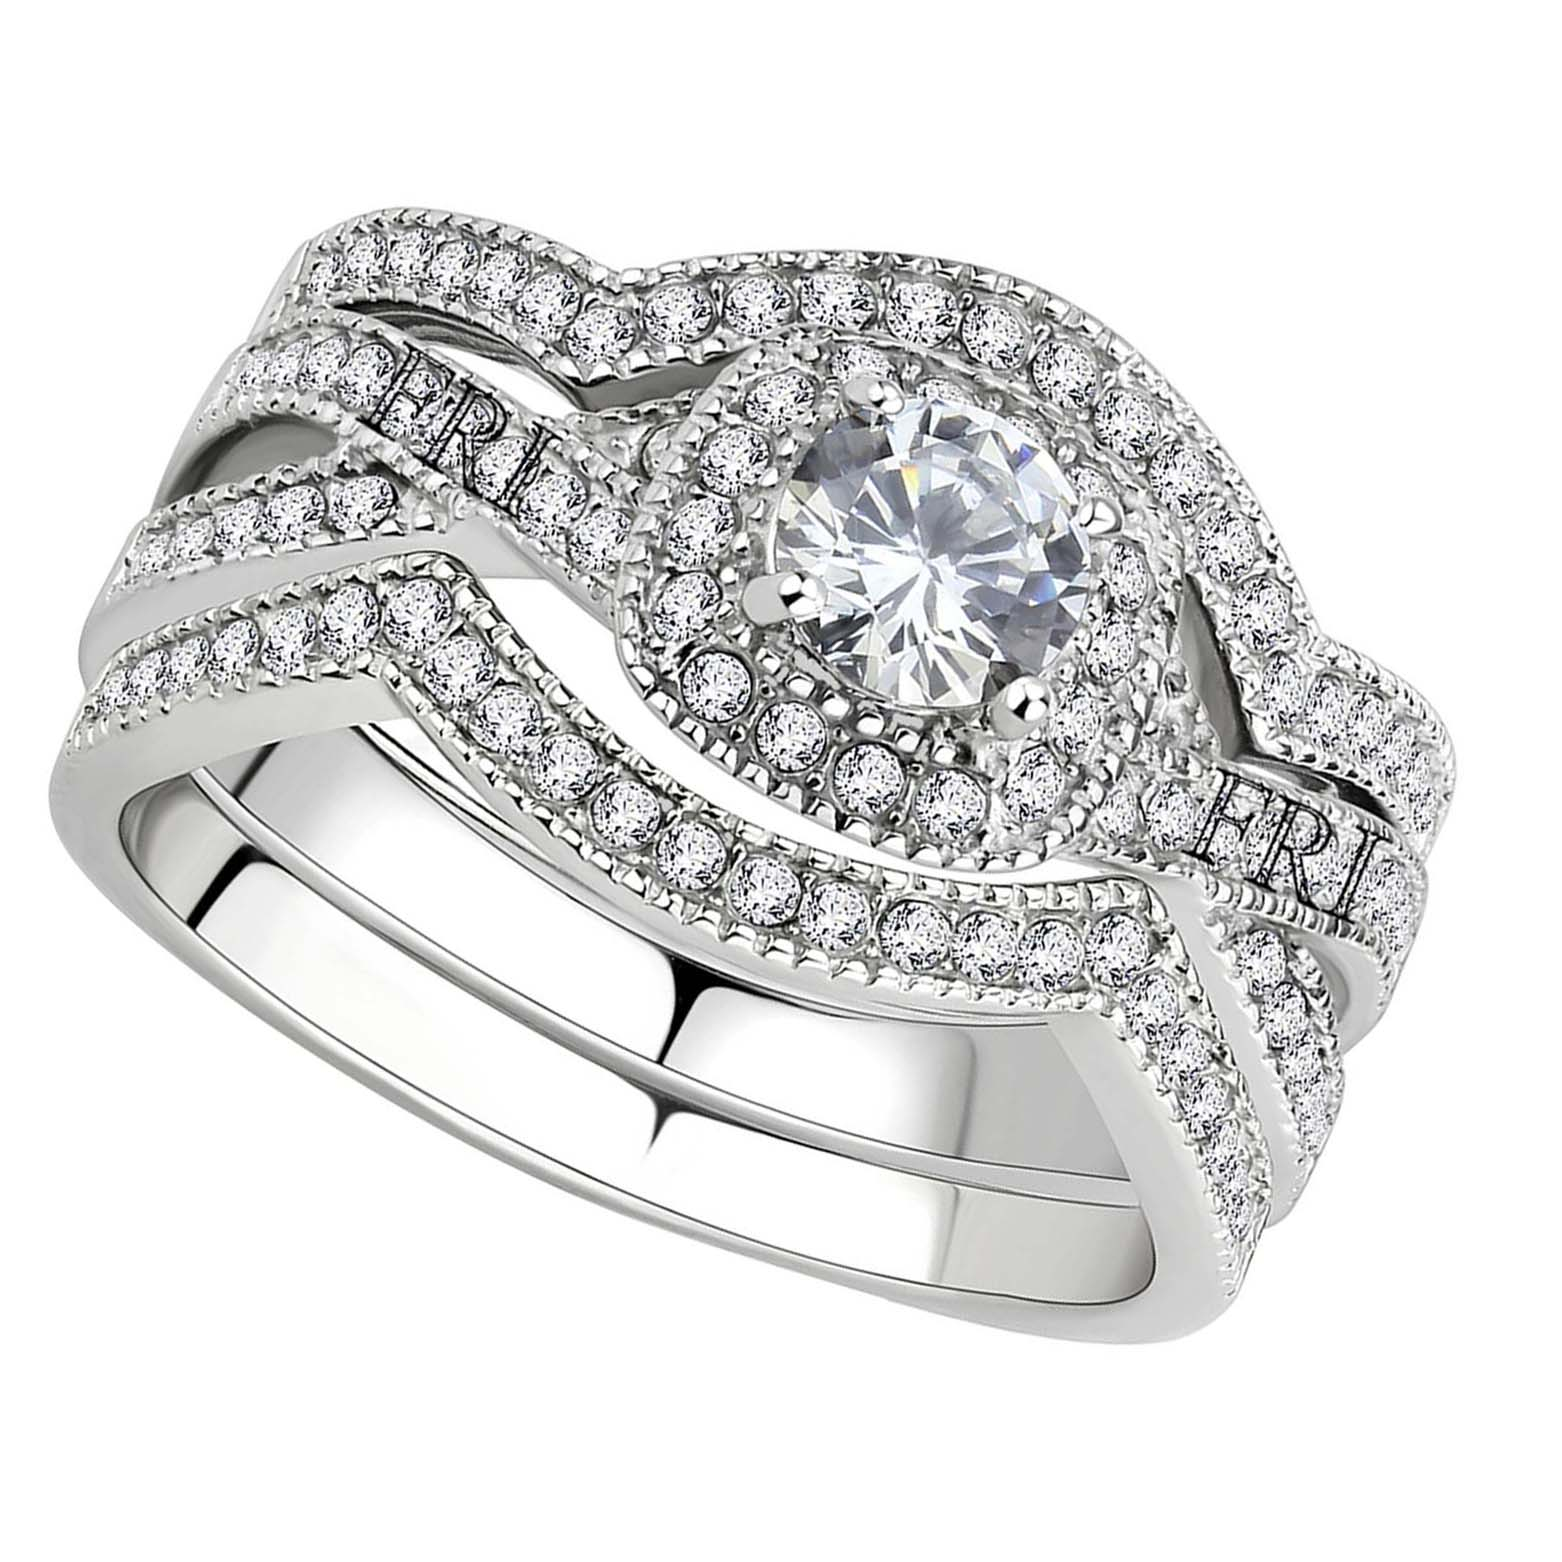 Stainless-Steel-Women-039-s-Infinity-Wedding-Ring-Set-Halo-Round-Cut-Cubic-Zirconia thumbnail 15